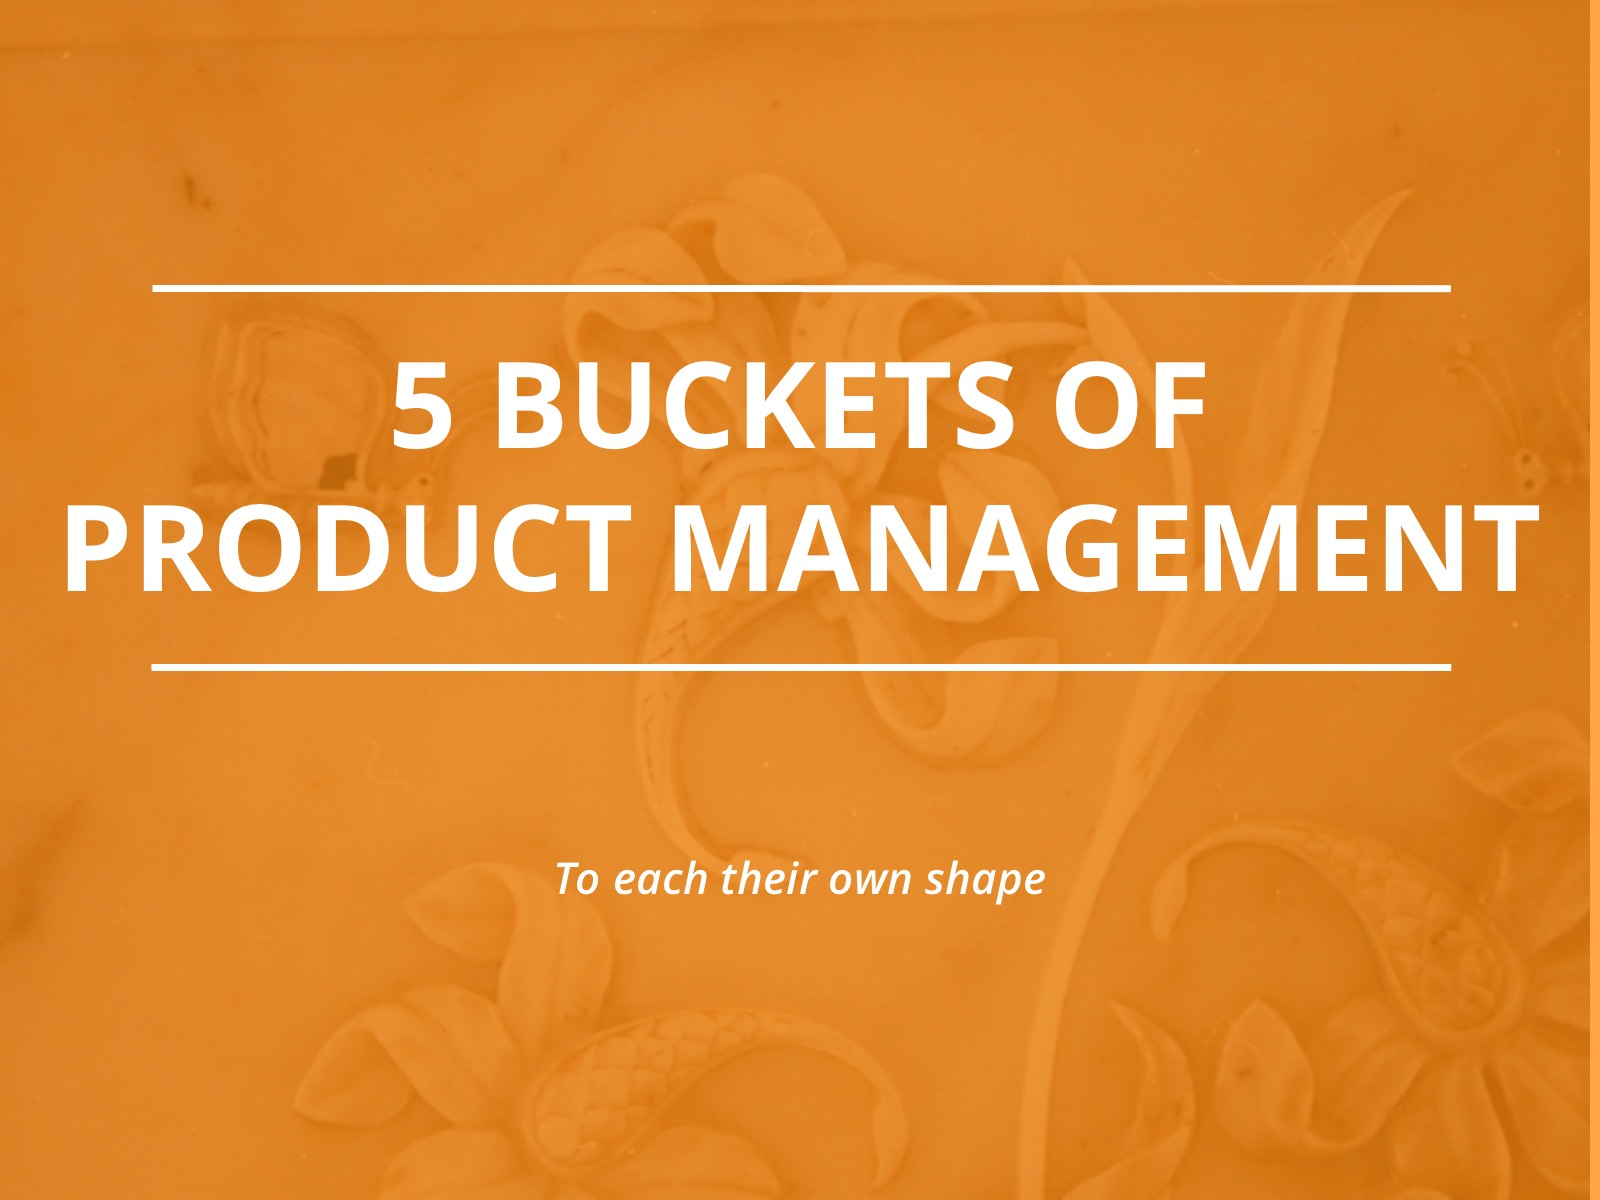 Five Buckets Model for Product Management